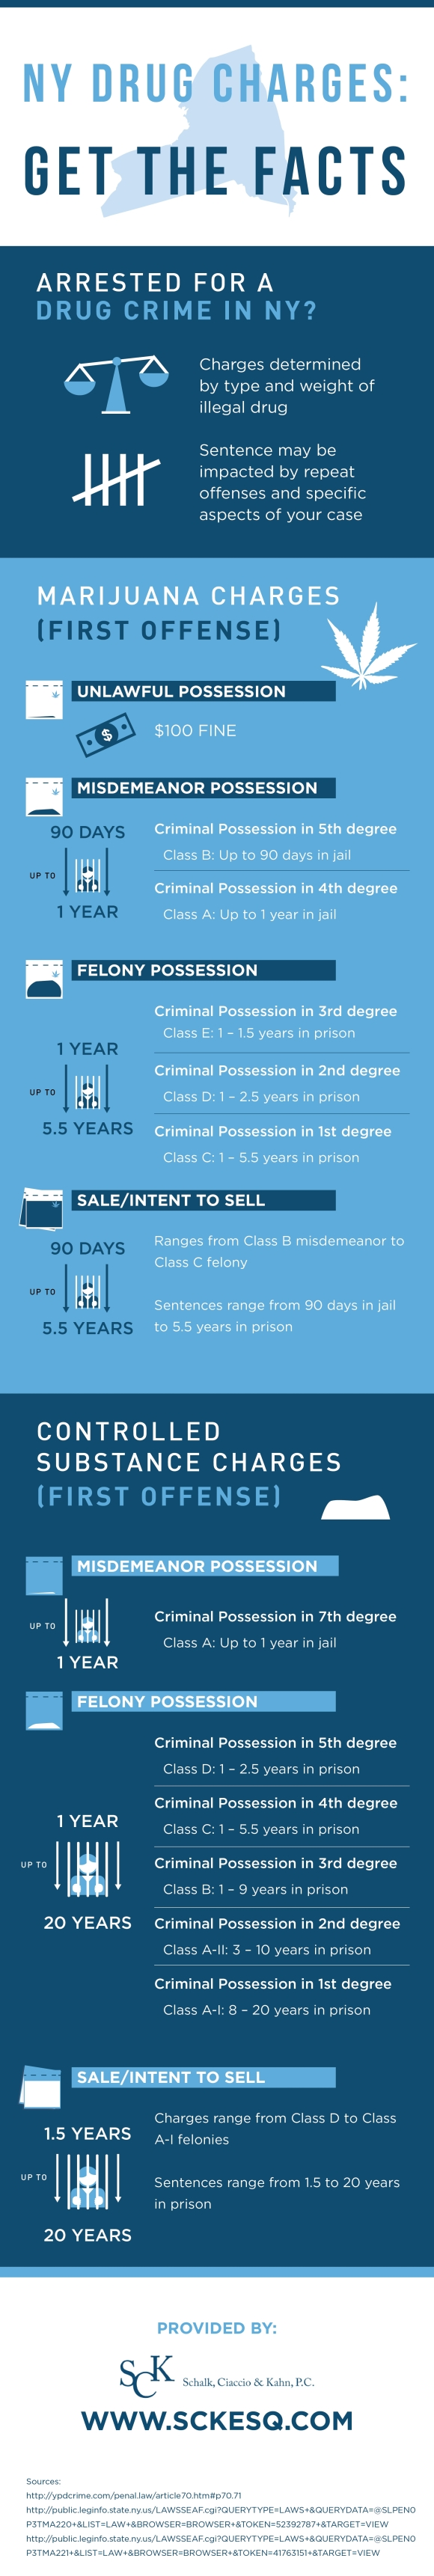 NY Drug Charges - Get the Facts